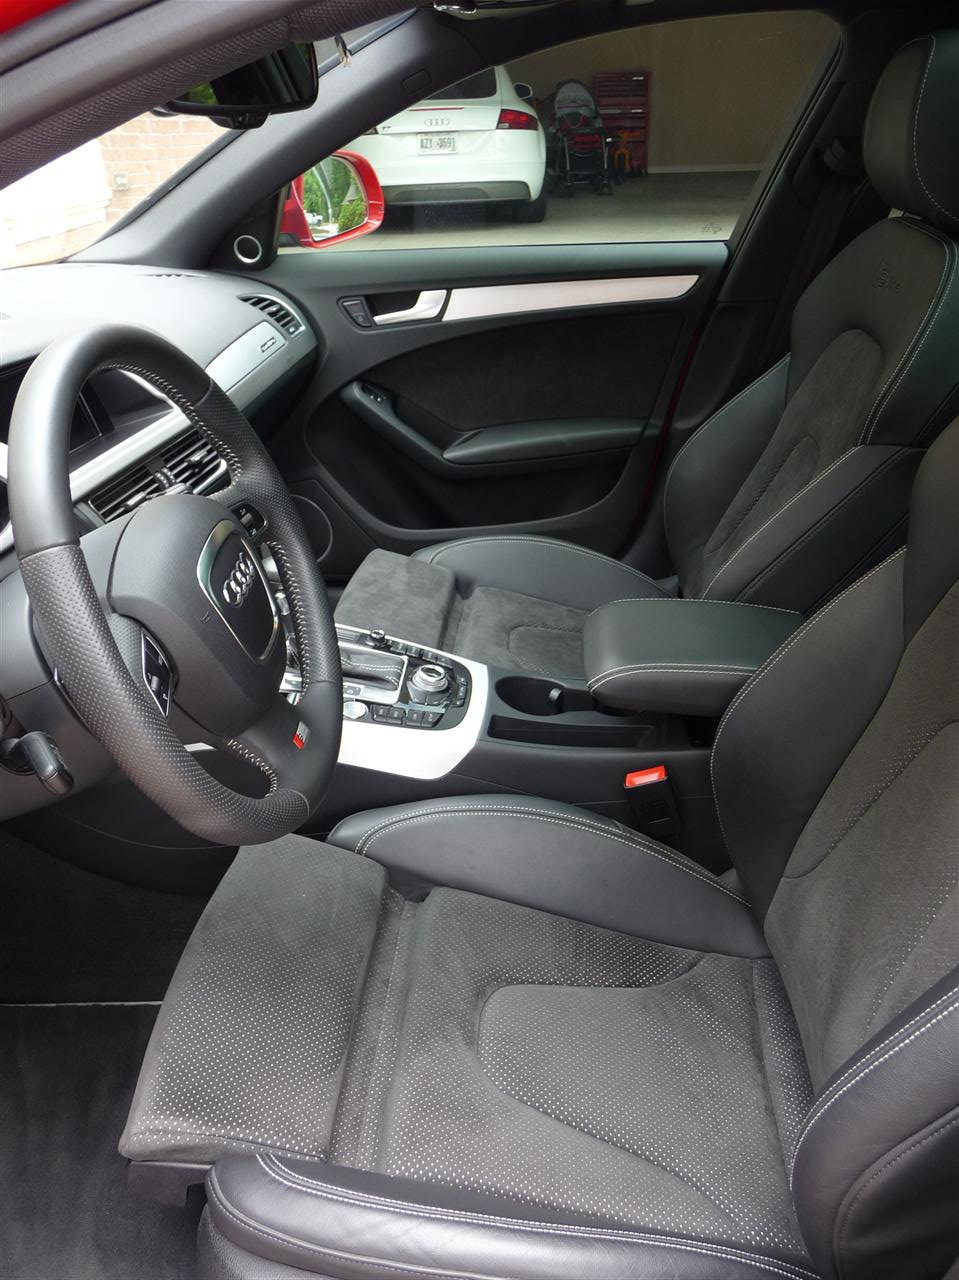 S Line Seats With Alcantara Inserts